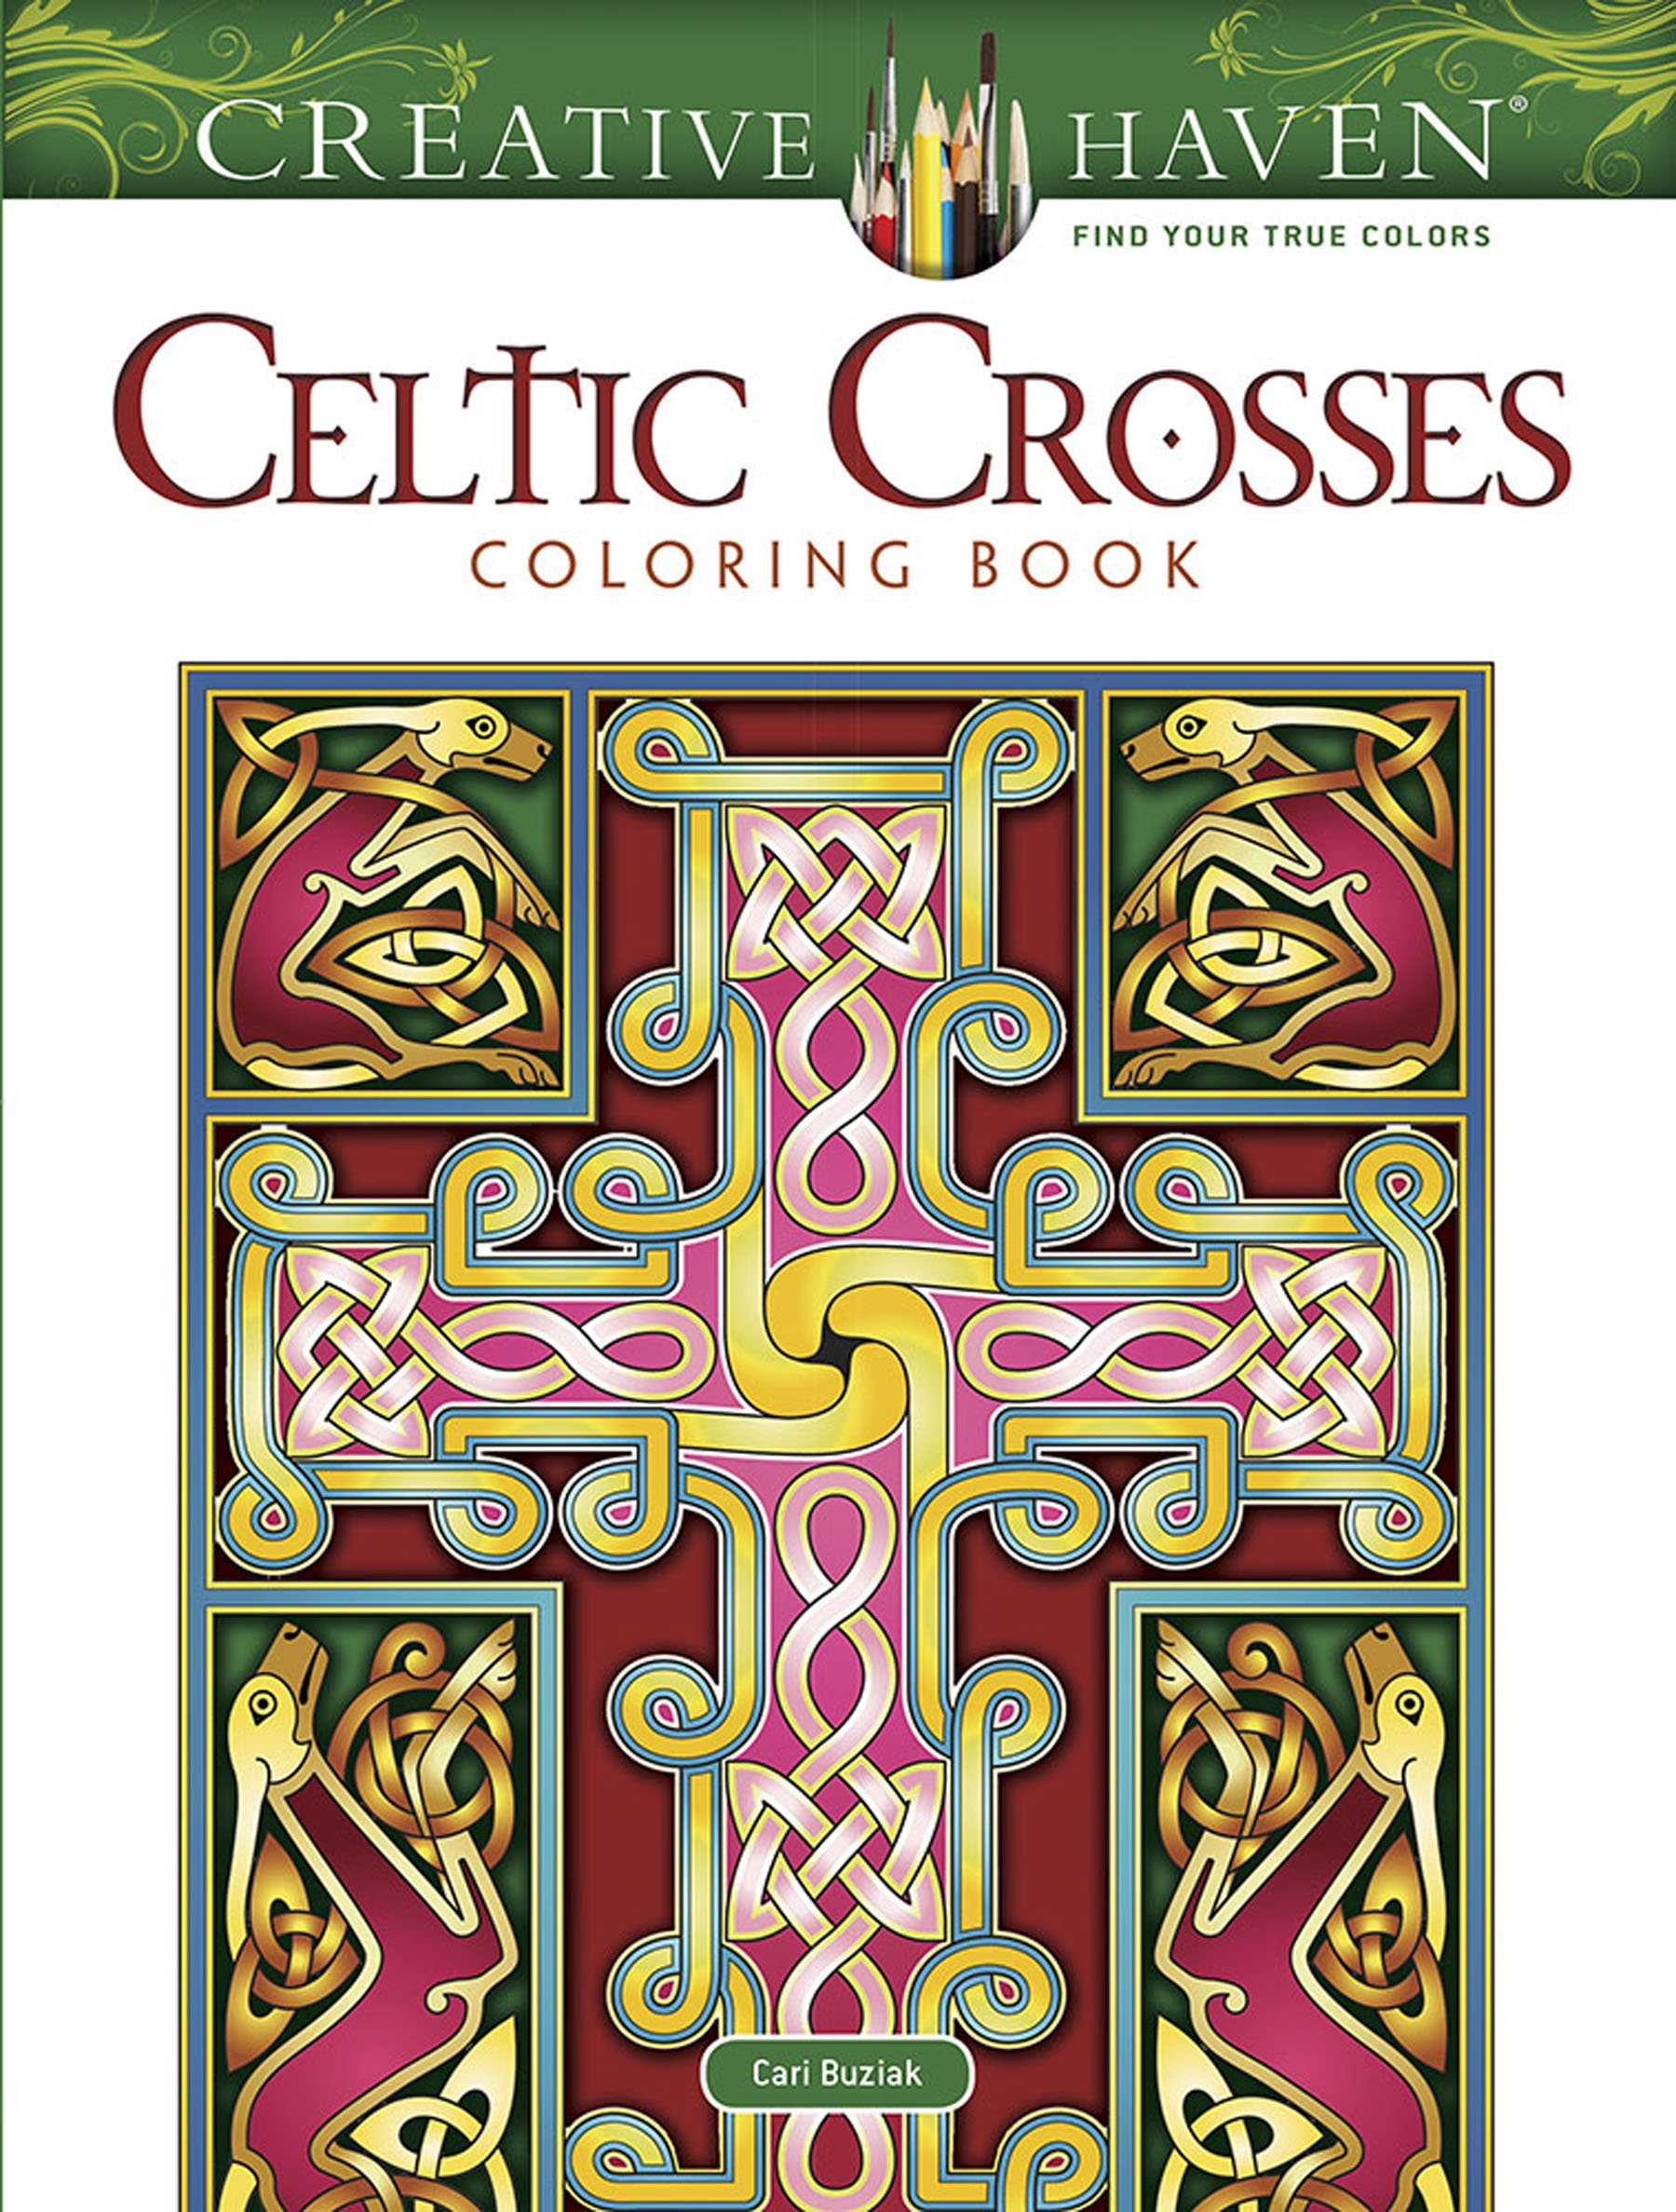 Creative Haven Celtic Crosses Coloring Book (Adult Coloring)